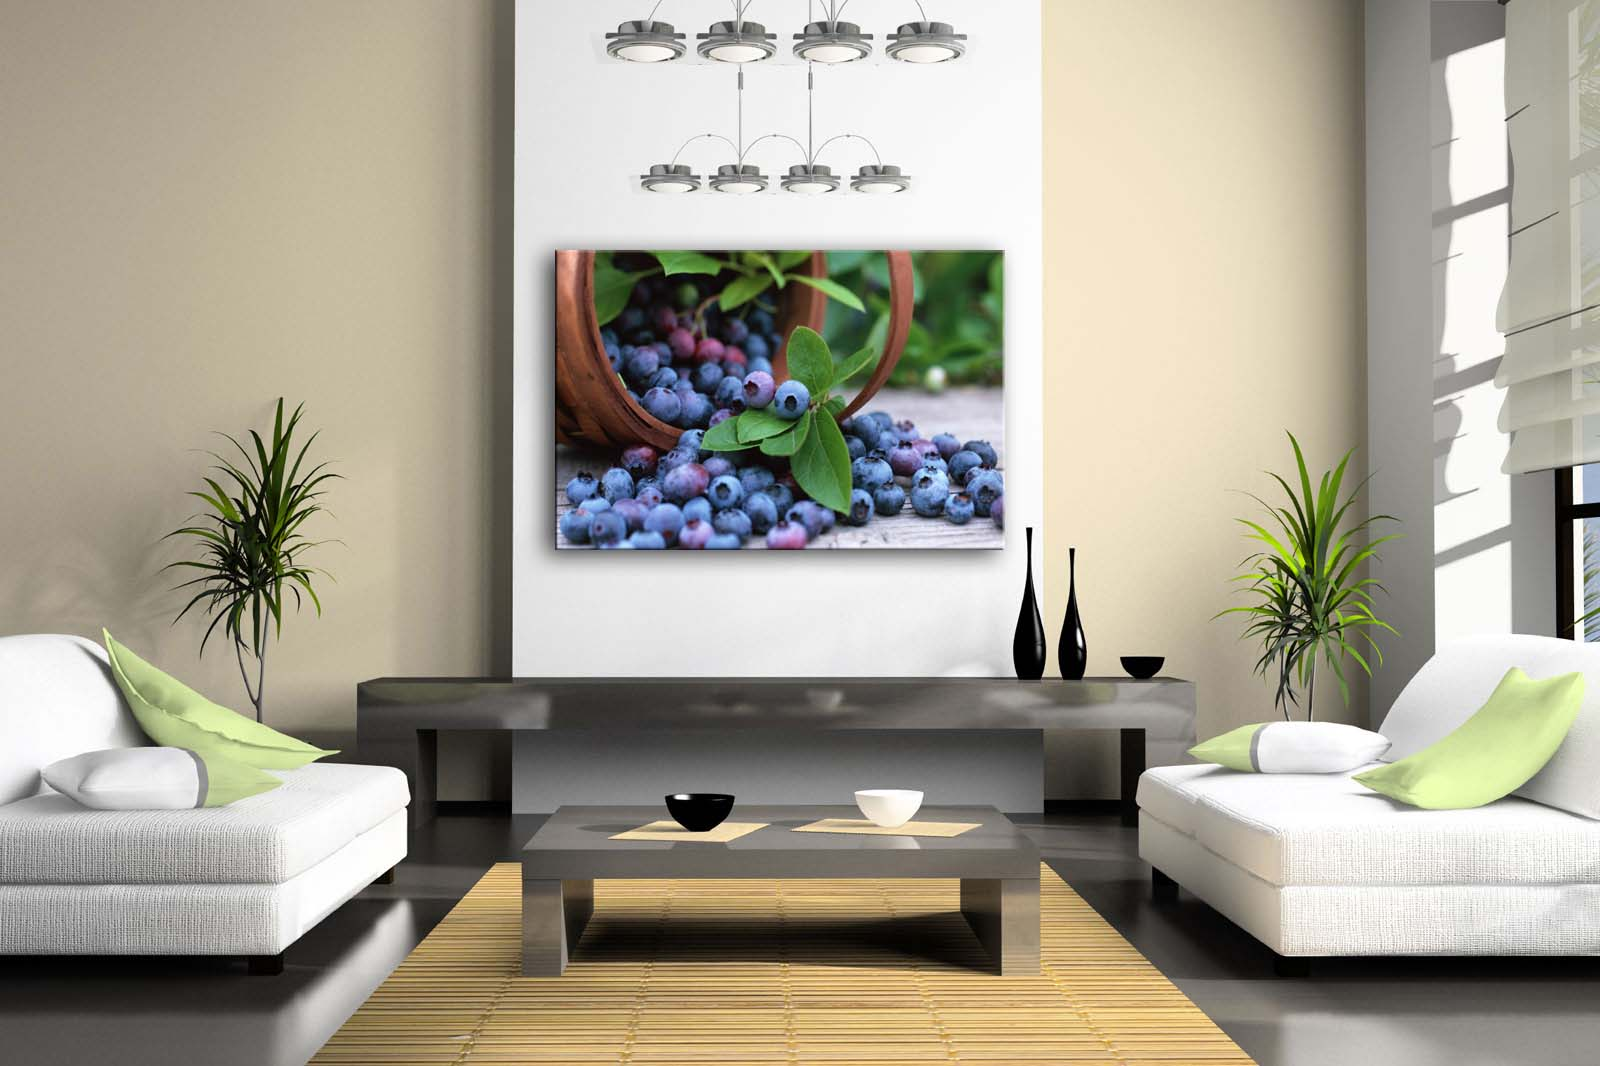 Framed Wall Art Pictures Blueberry Basket Canvas Print Food Modern Posters With Wooden Frames For Home Living Room Decor - 2